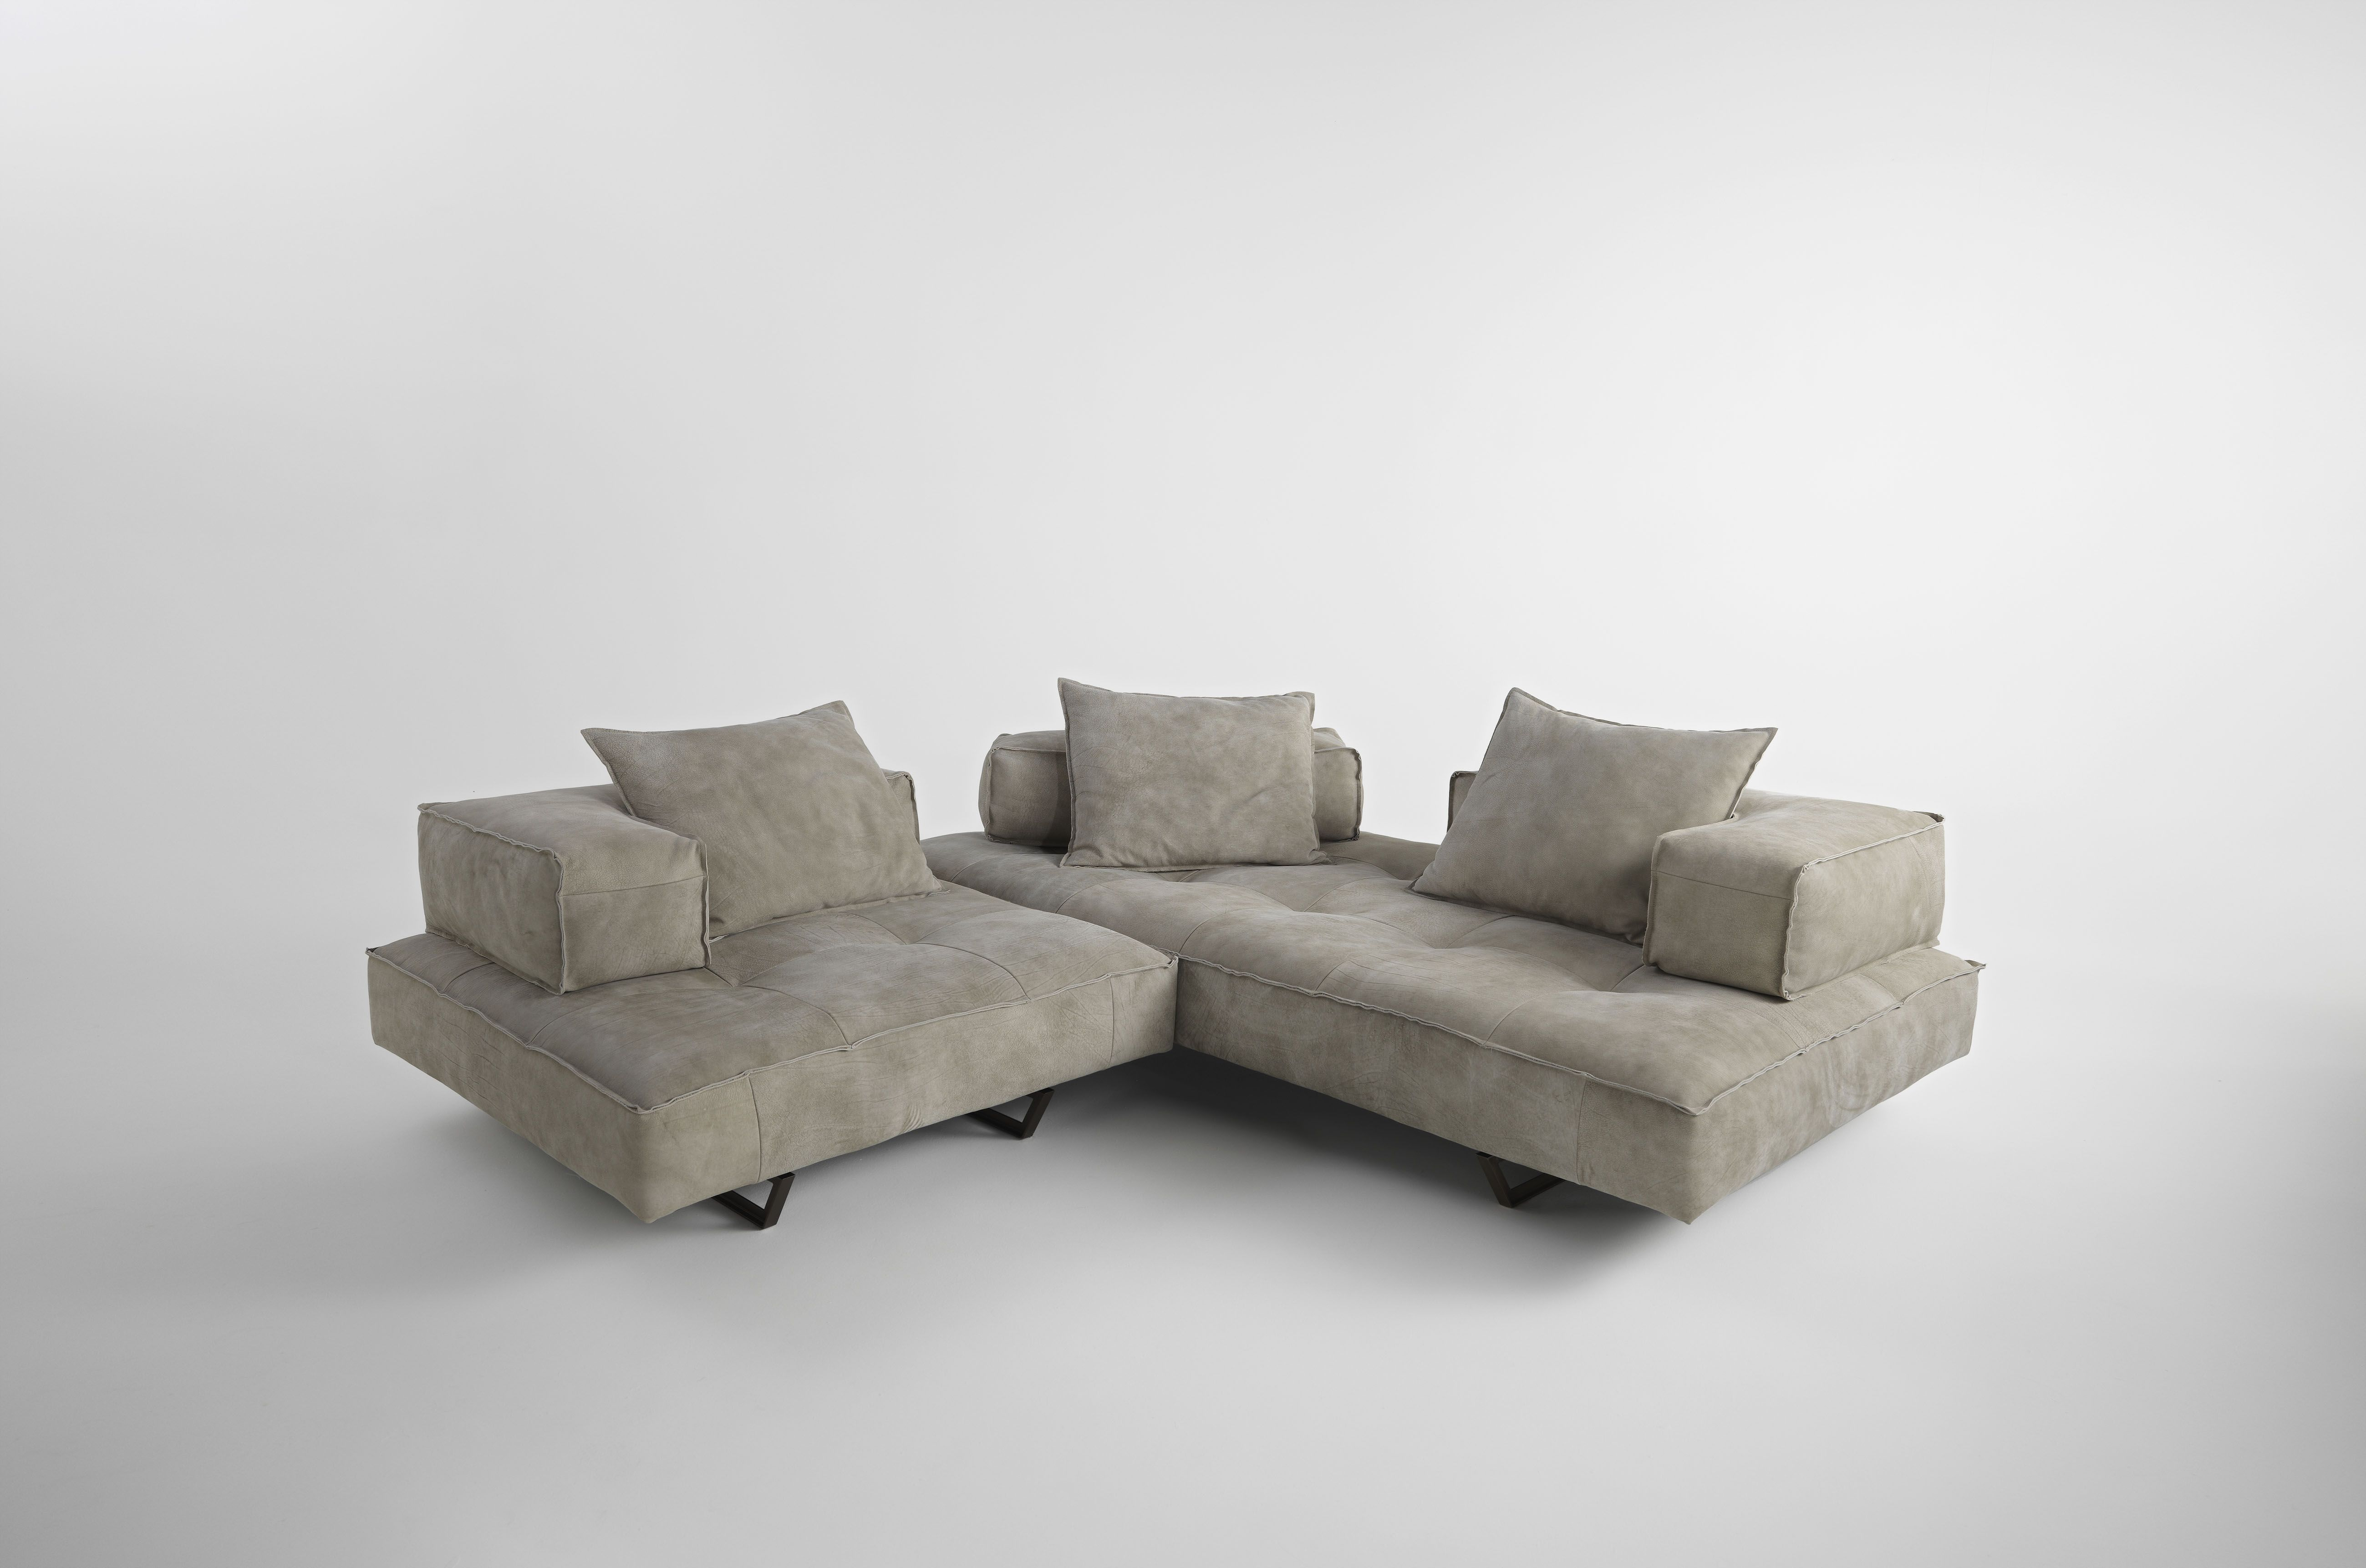 M1 Sofa Modular Sofa With Various Elements Matchable According To  # Muebles Sedutti